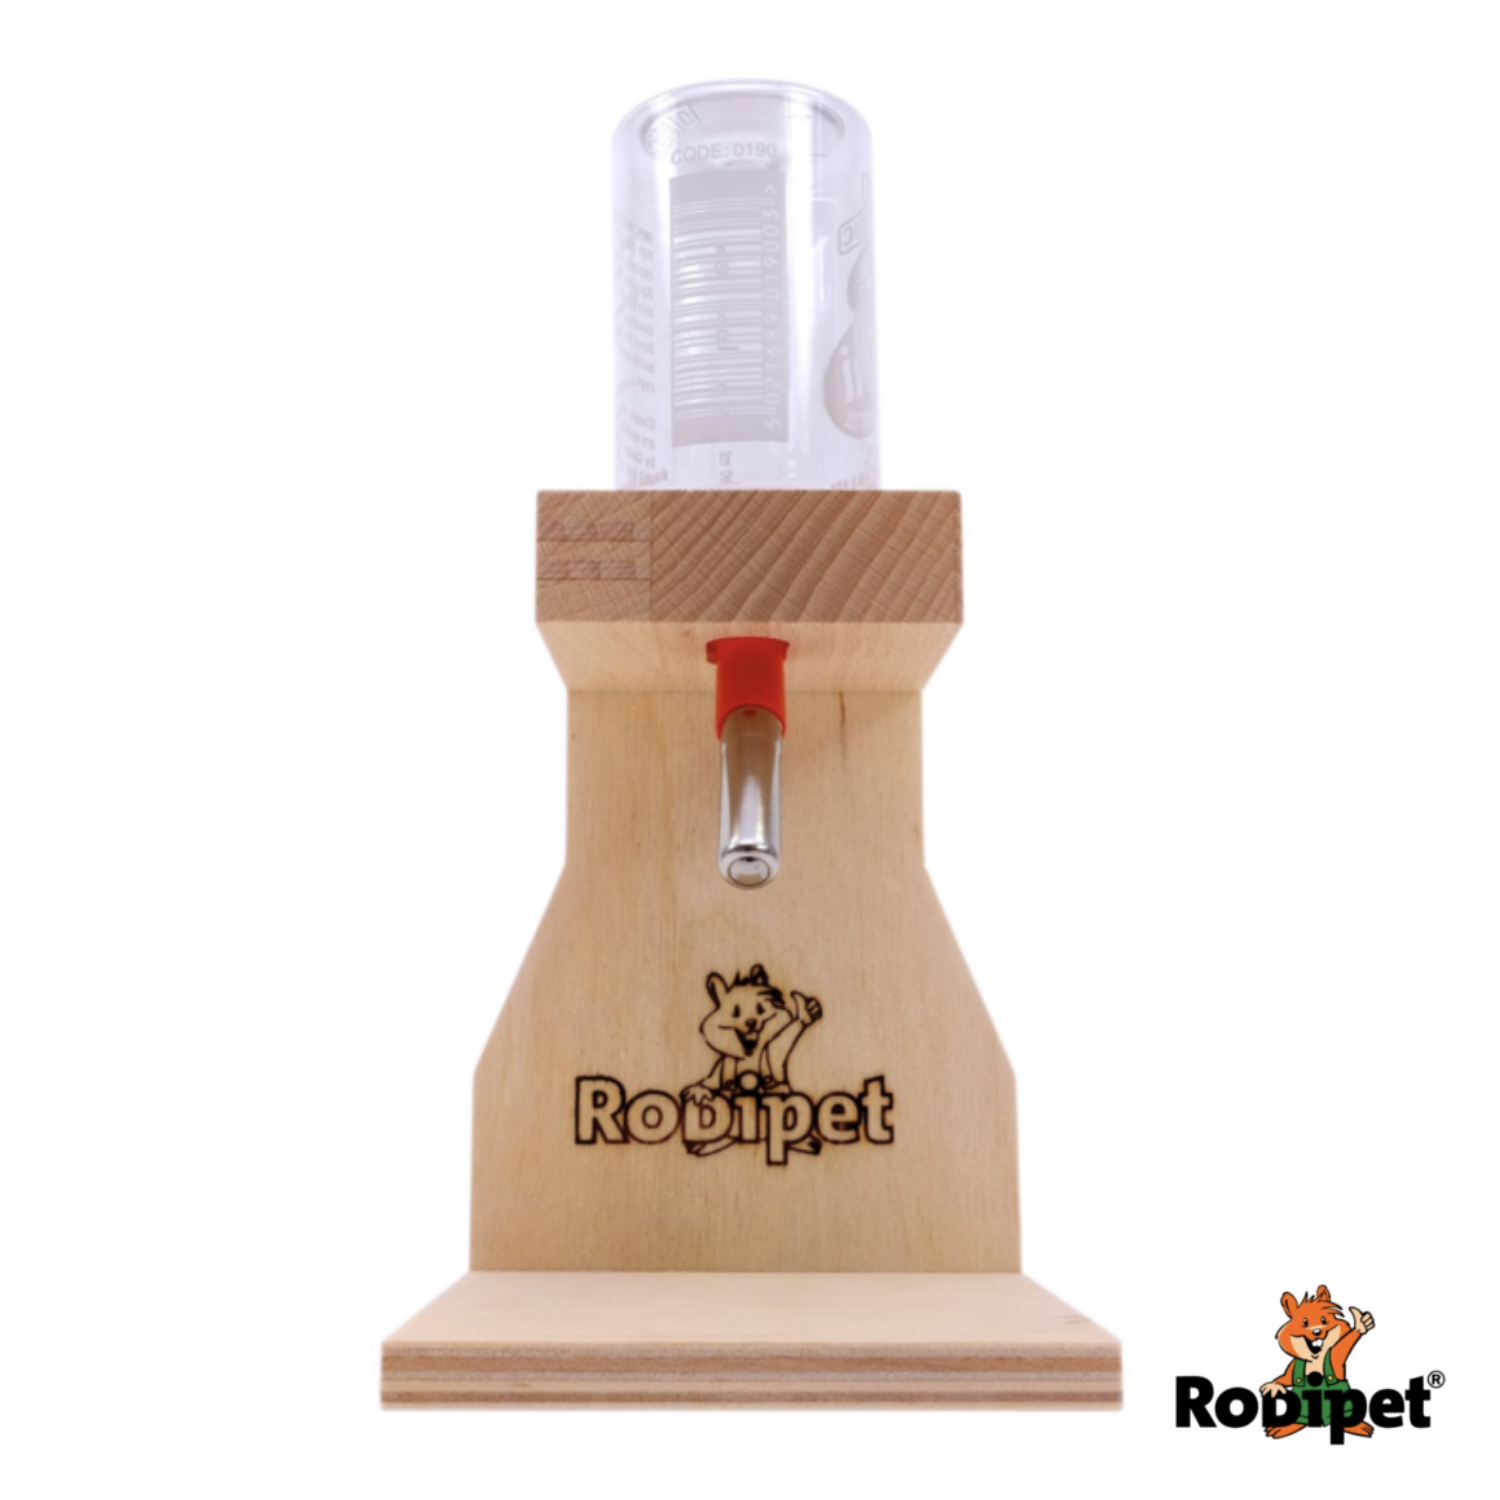 Rodipet DRINK Bottle with Stand - 18.5cm